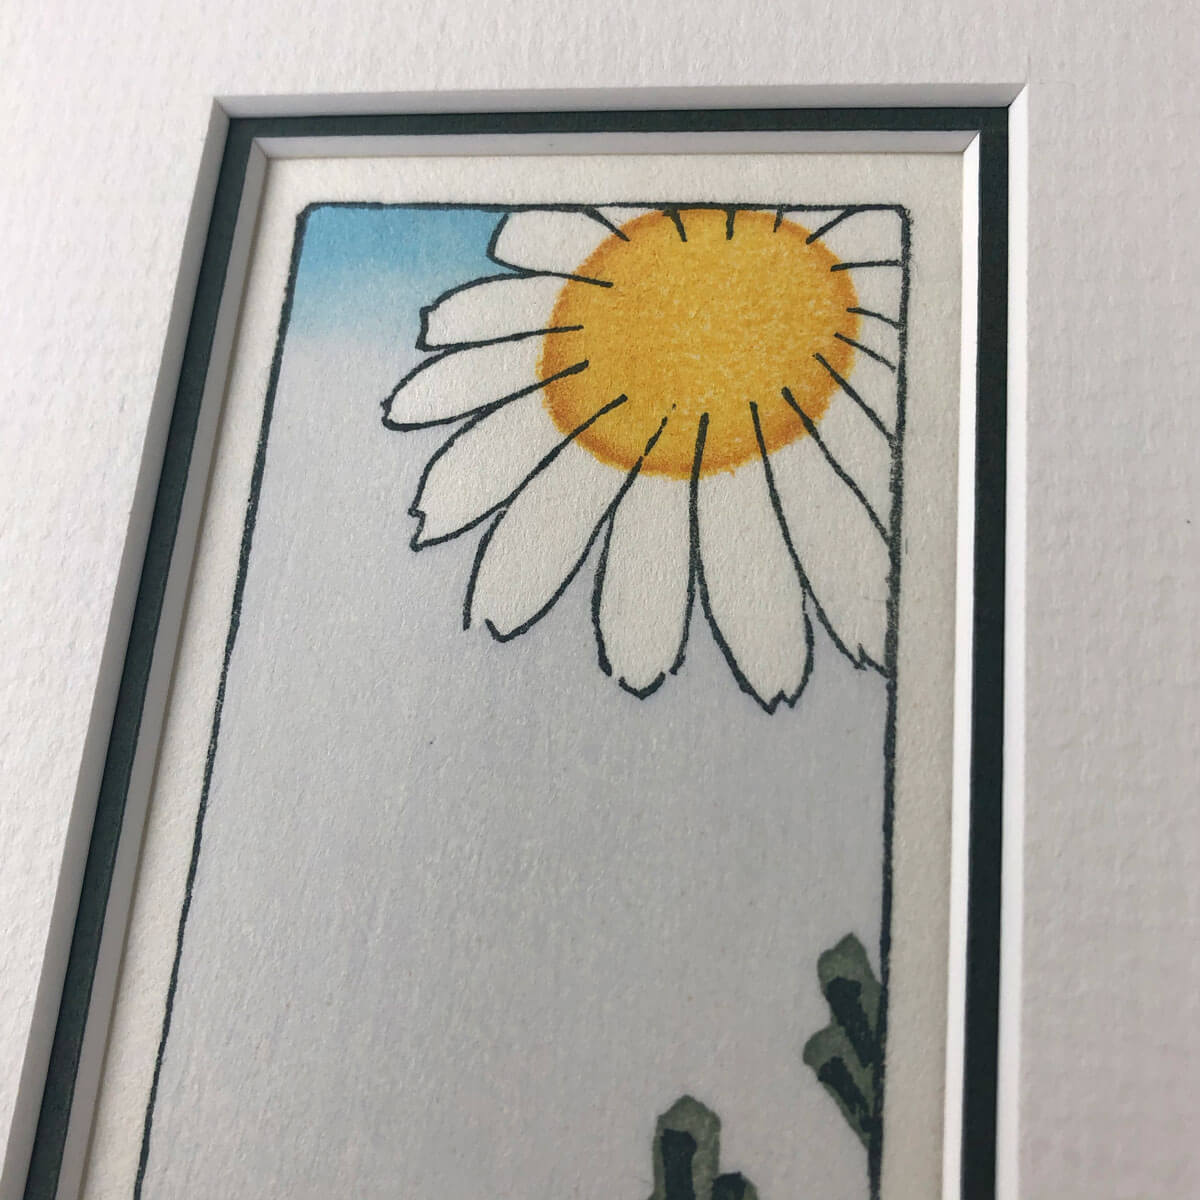 handmade woodblock print of a white daisy with yellow centre against pale blue grey background